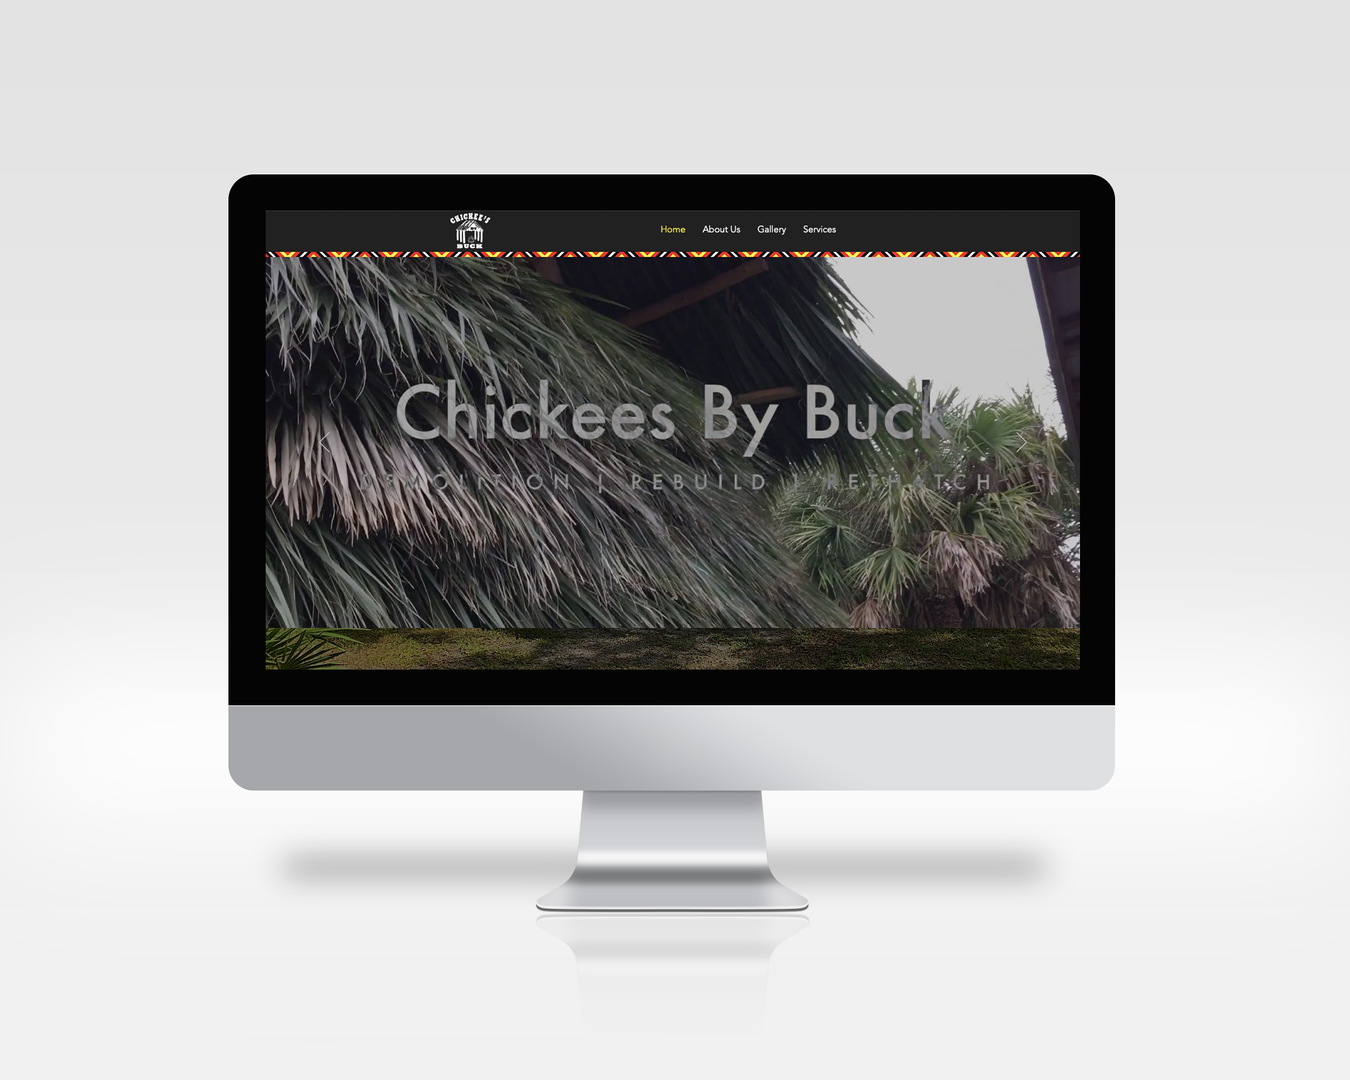 Chickees By Buck Computer Mockup